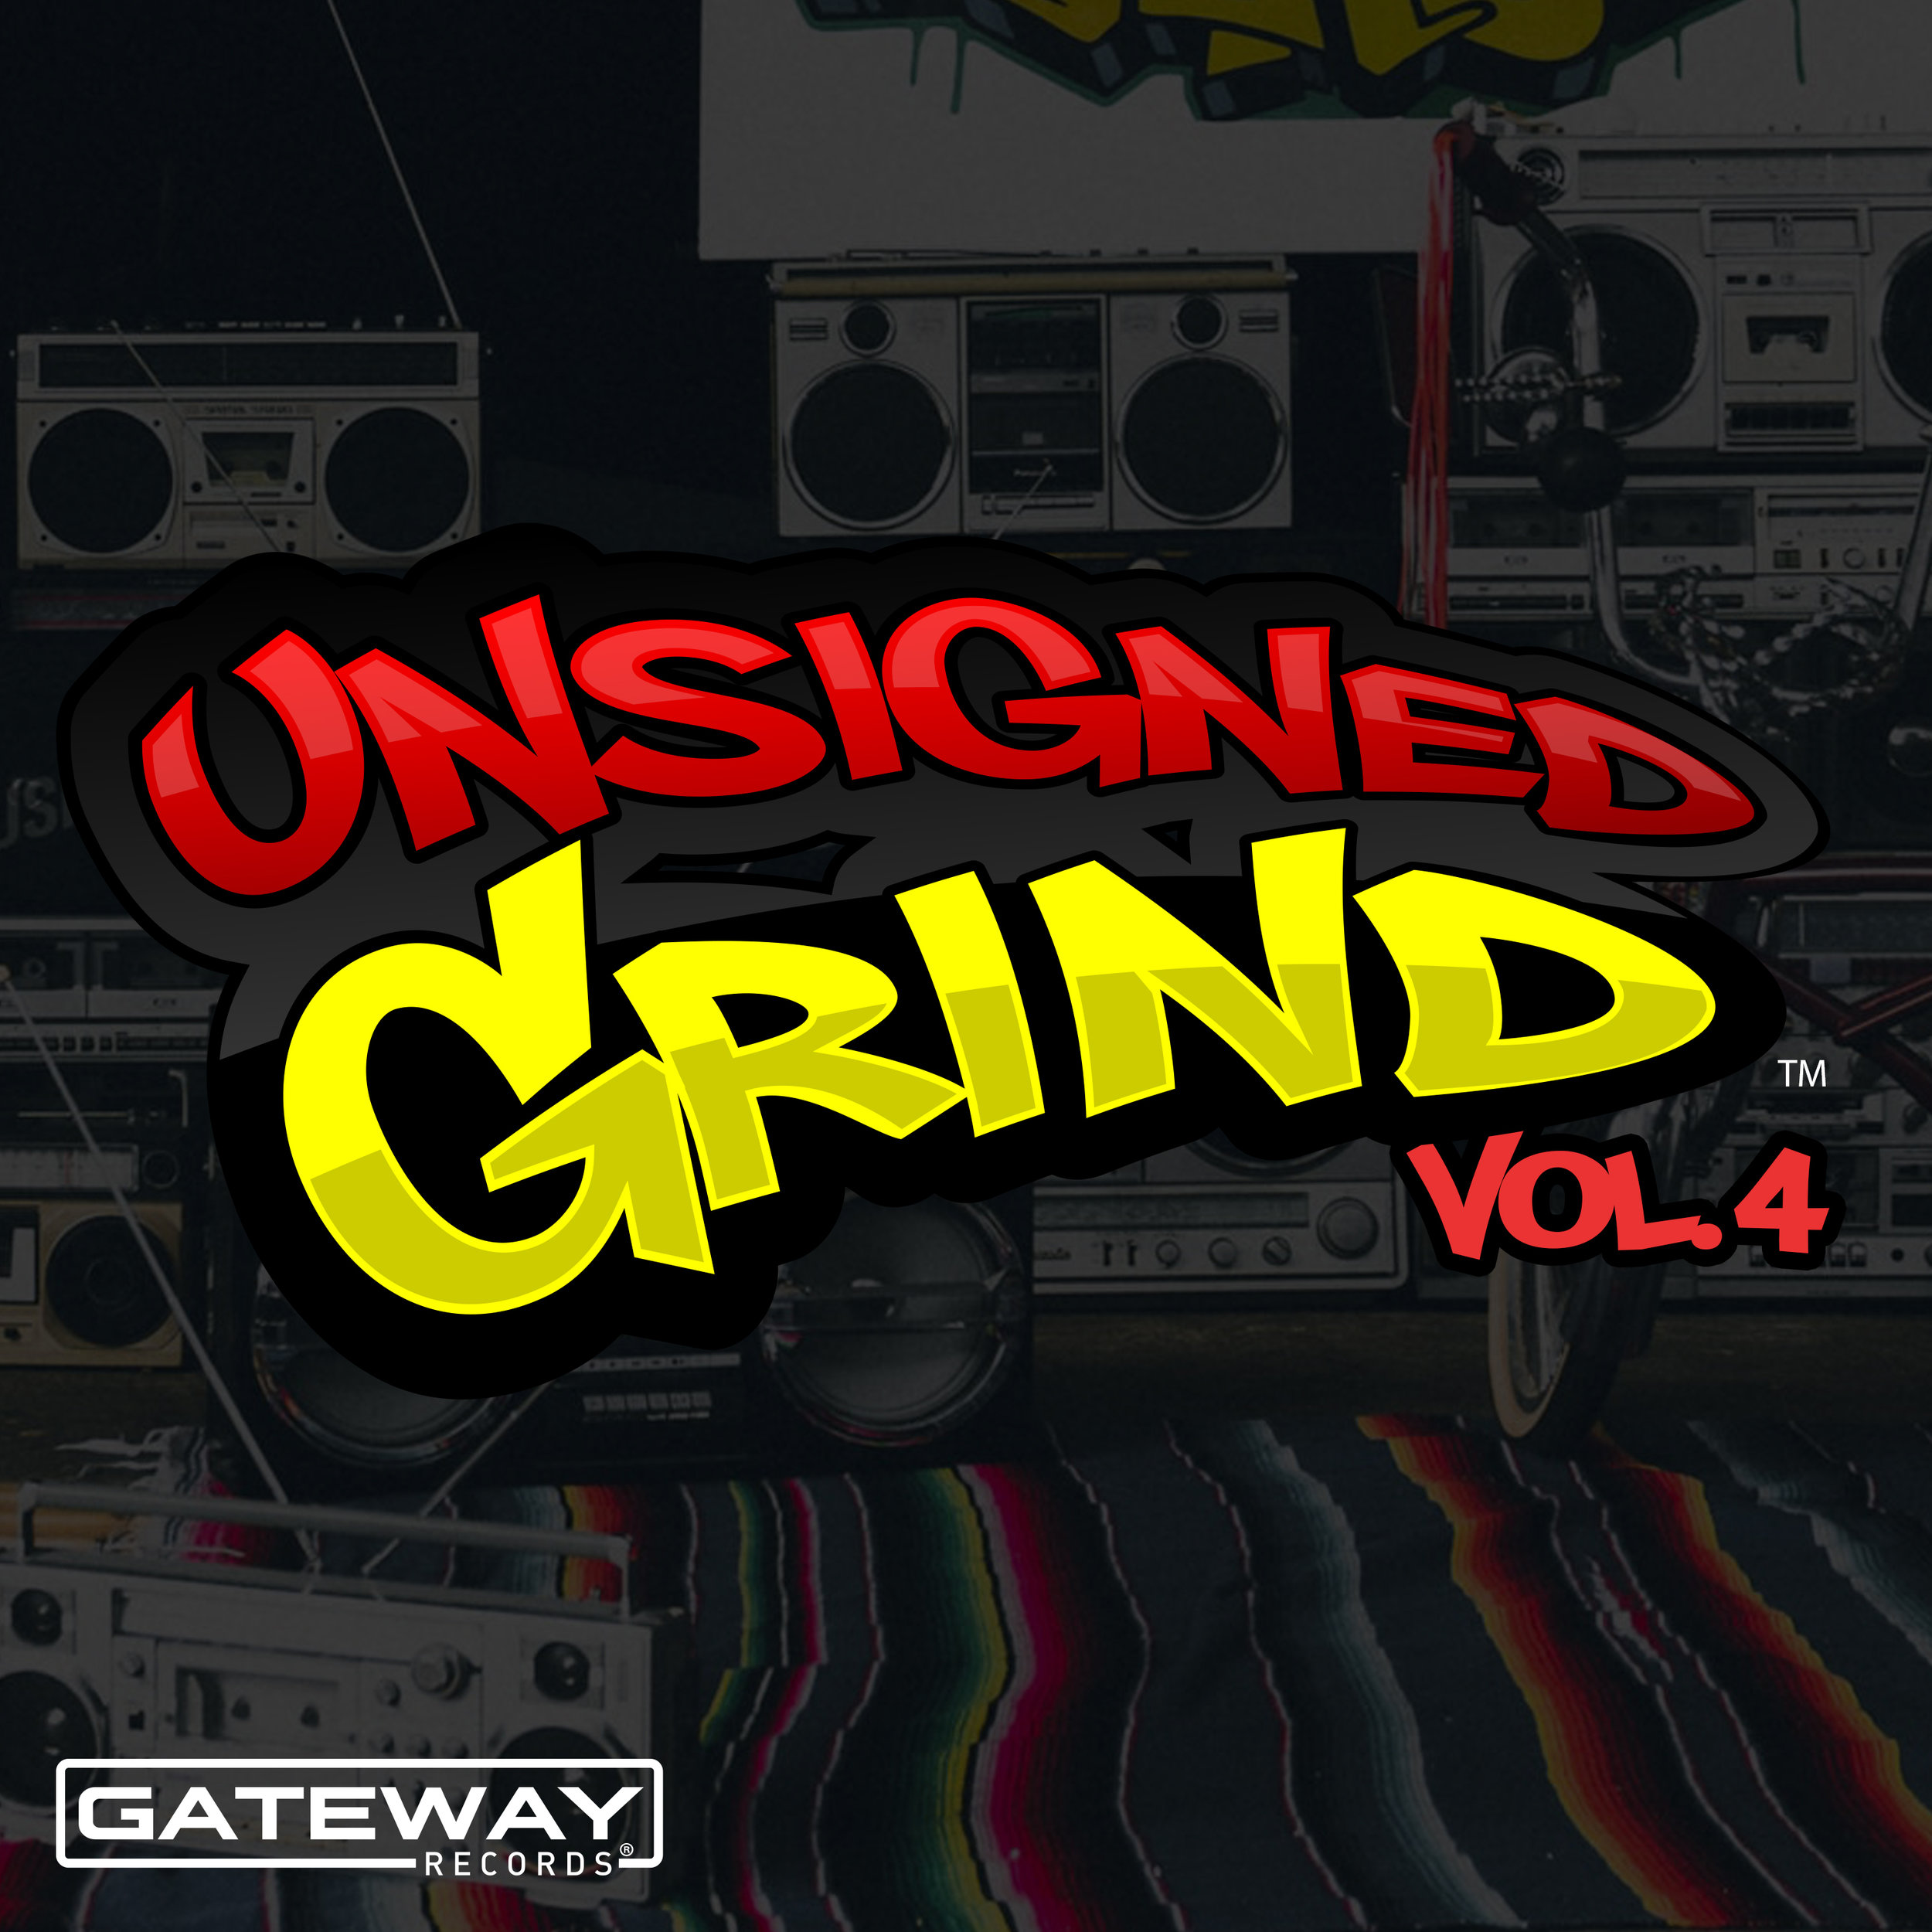 unsigned grind vol. 4 -